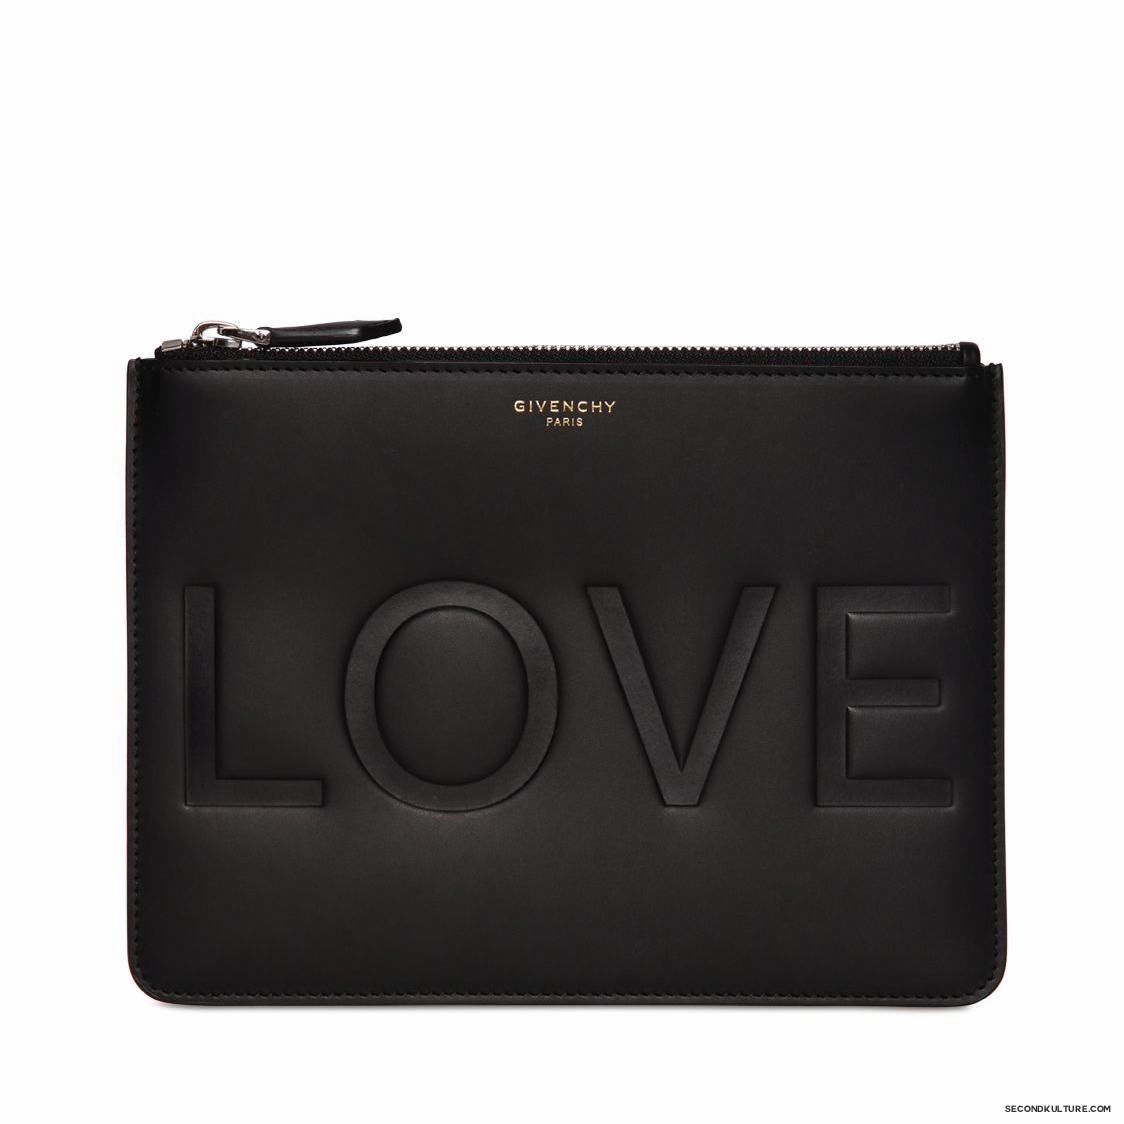 Givenchy-Black-Love-Embossed-Small-Zipped-Leather-Pouch-Fall-Winter-2015-1